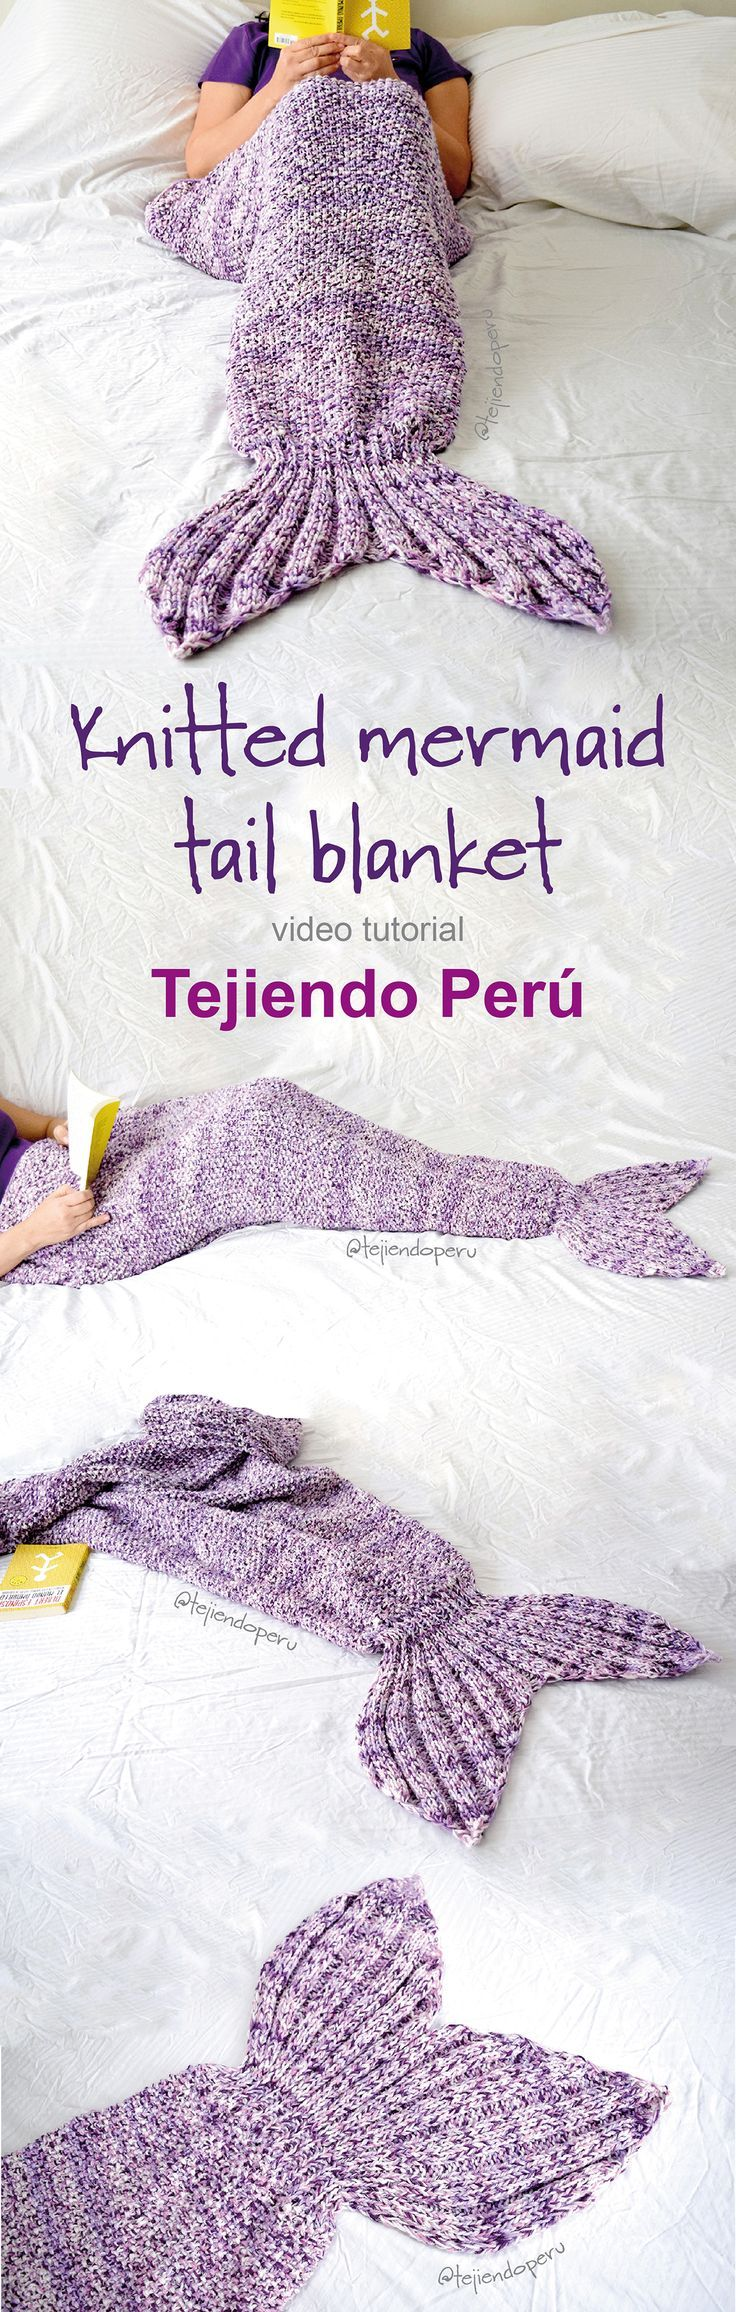 Mermaid tail knitted blanket: english subtitles video tutorial! #mermaidtail